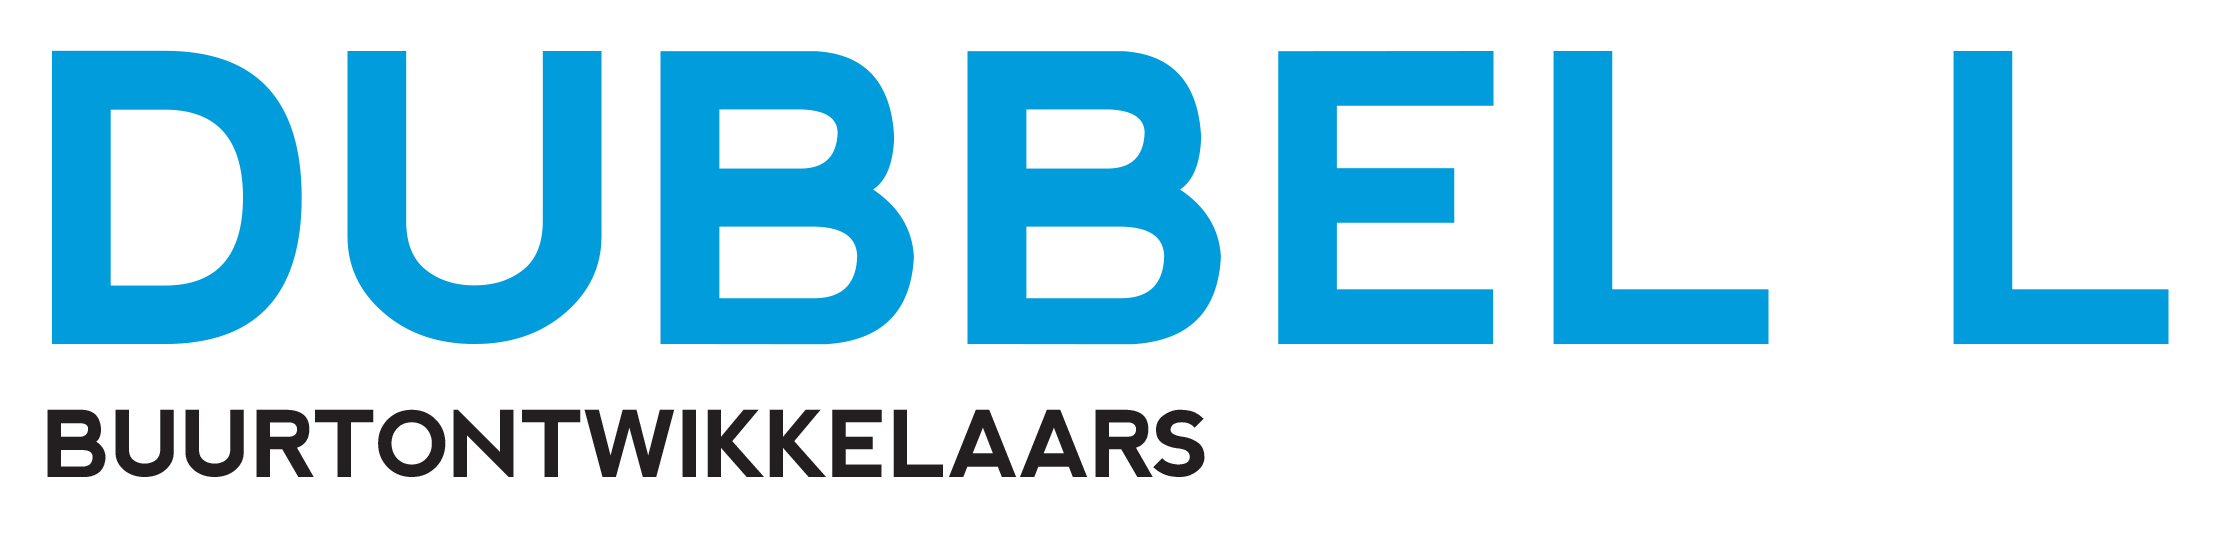 DubbeLL_LOGO_04C.png